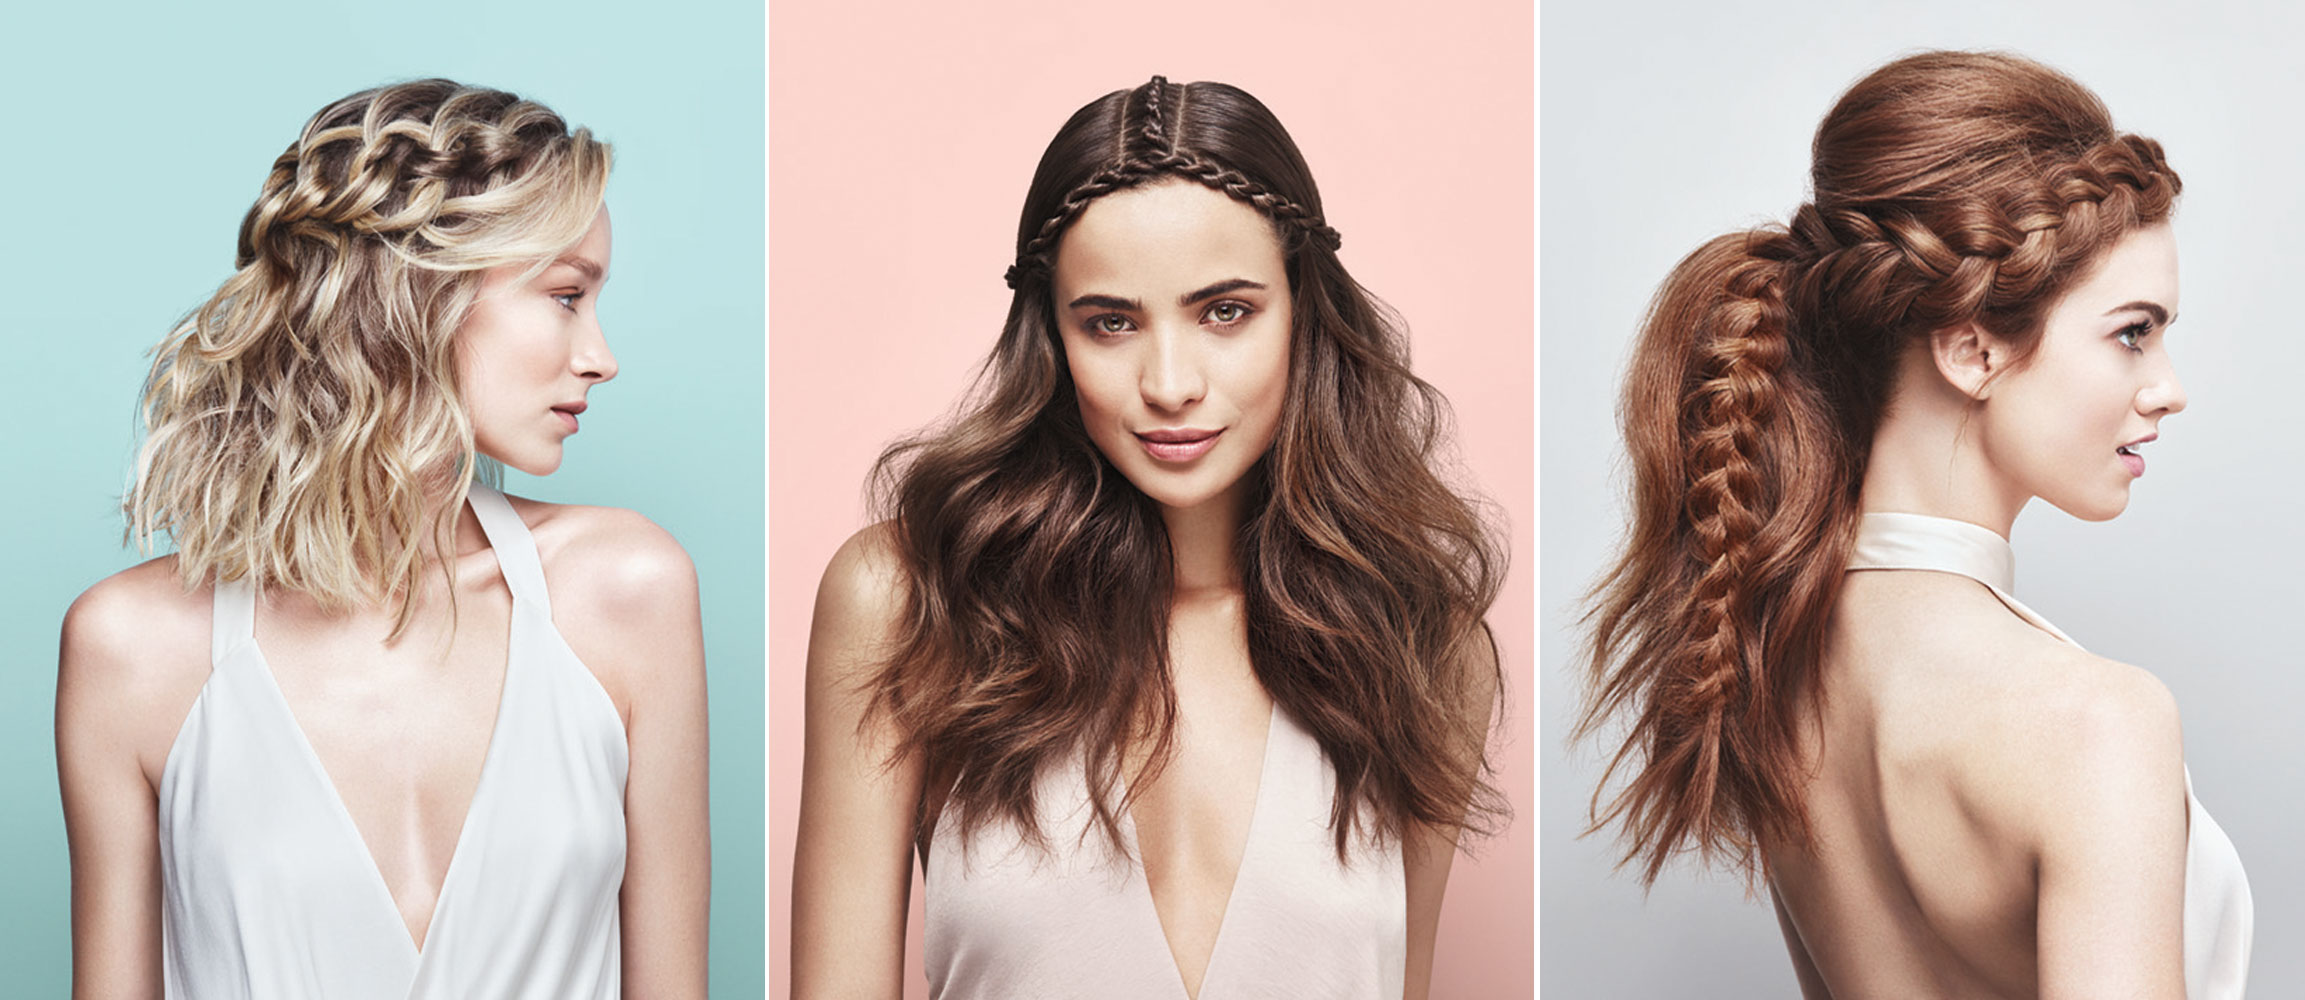 Faux-Chella: Three Festival-Inspired Braided Styles by Moroccanoil's Kevin Hughes